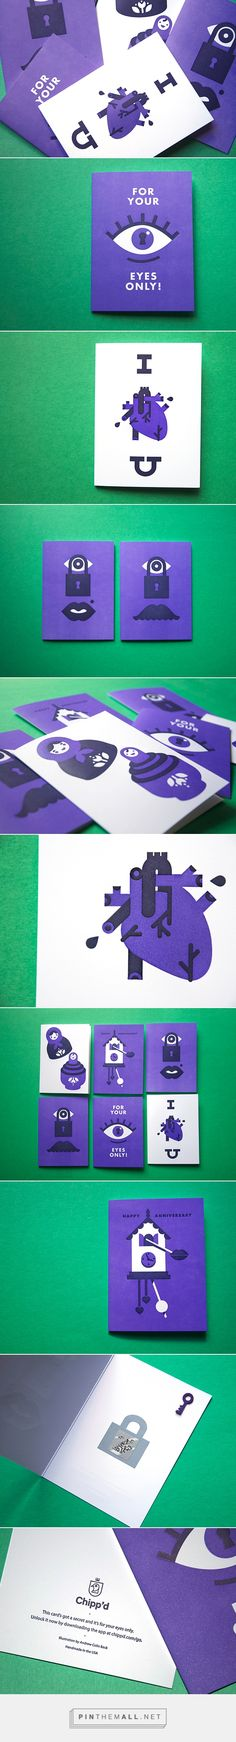 Andrew Colin Beck | Design & Illustration - created via https://pinthemall.net